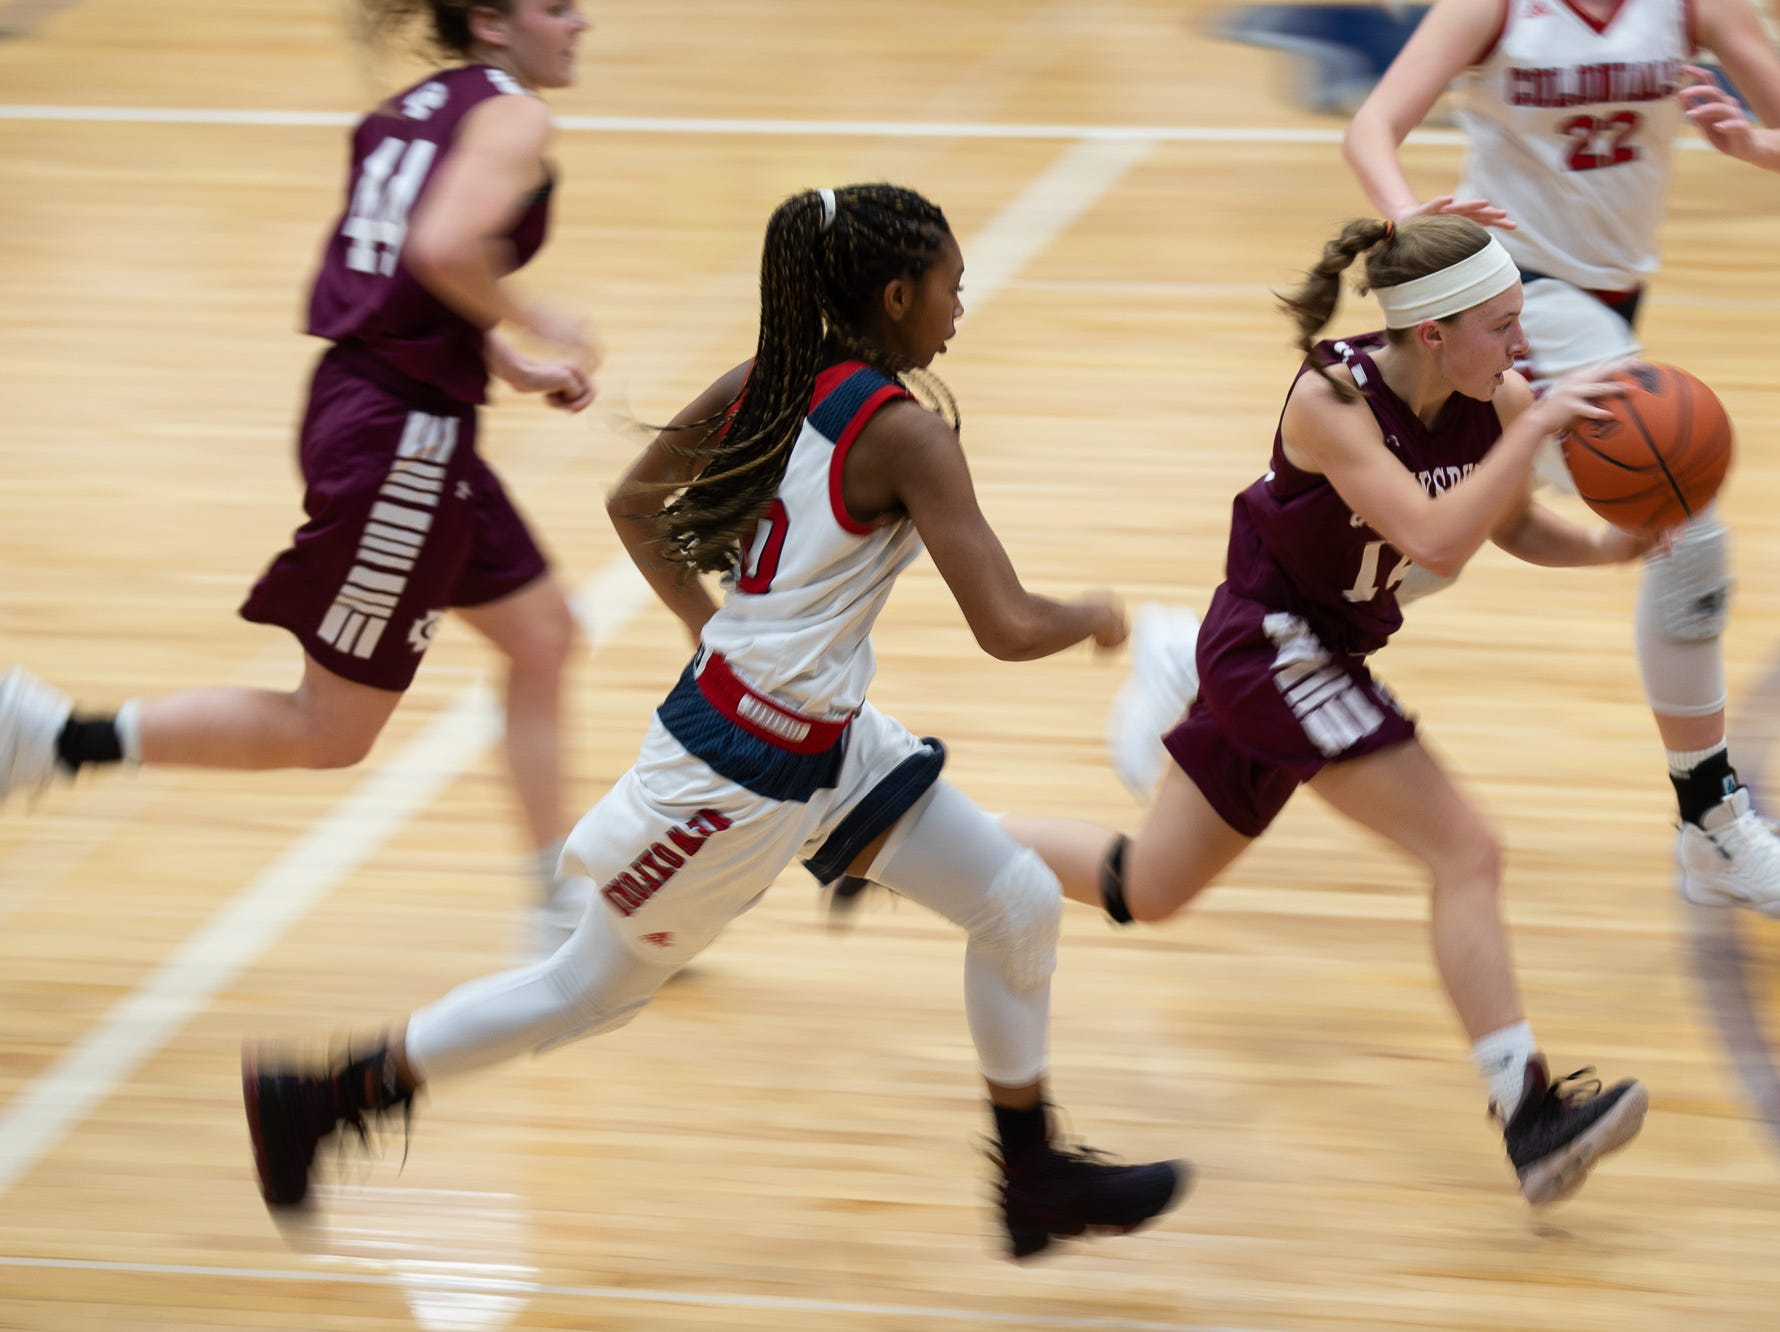 Gettysburg's Karli Bortner (12)drives the ball down the court during the championship game between New Oxford and Gettysburg at the New Oxford Girls Basketball Tip-Off Tournament, Saturday, Dec. 8, 2018, in New Oxford. The Gettysburg Lady Warriors defeated the New Oxford Lady Colonials 47-40.